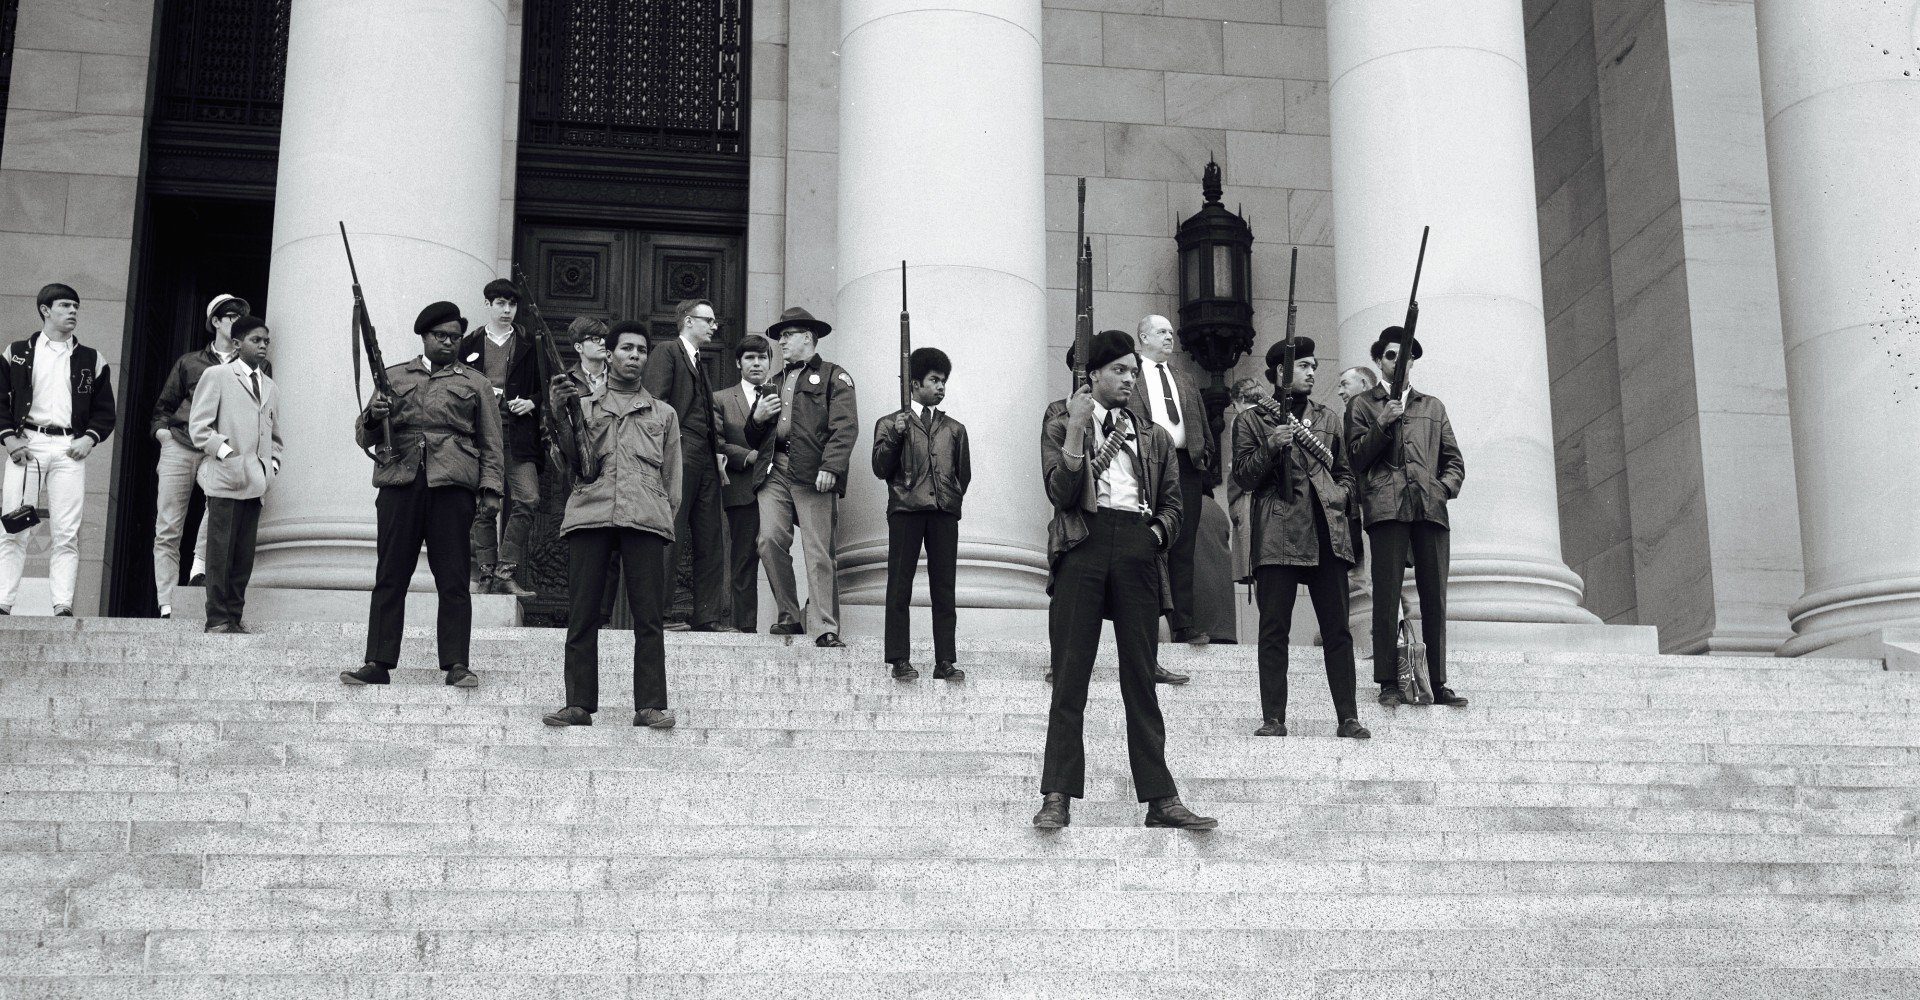 a report on the ten point stance of the black panther party